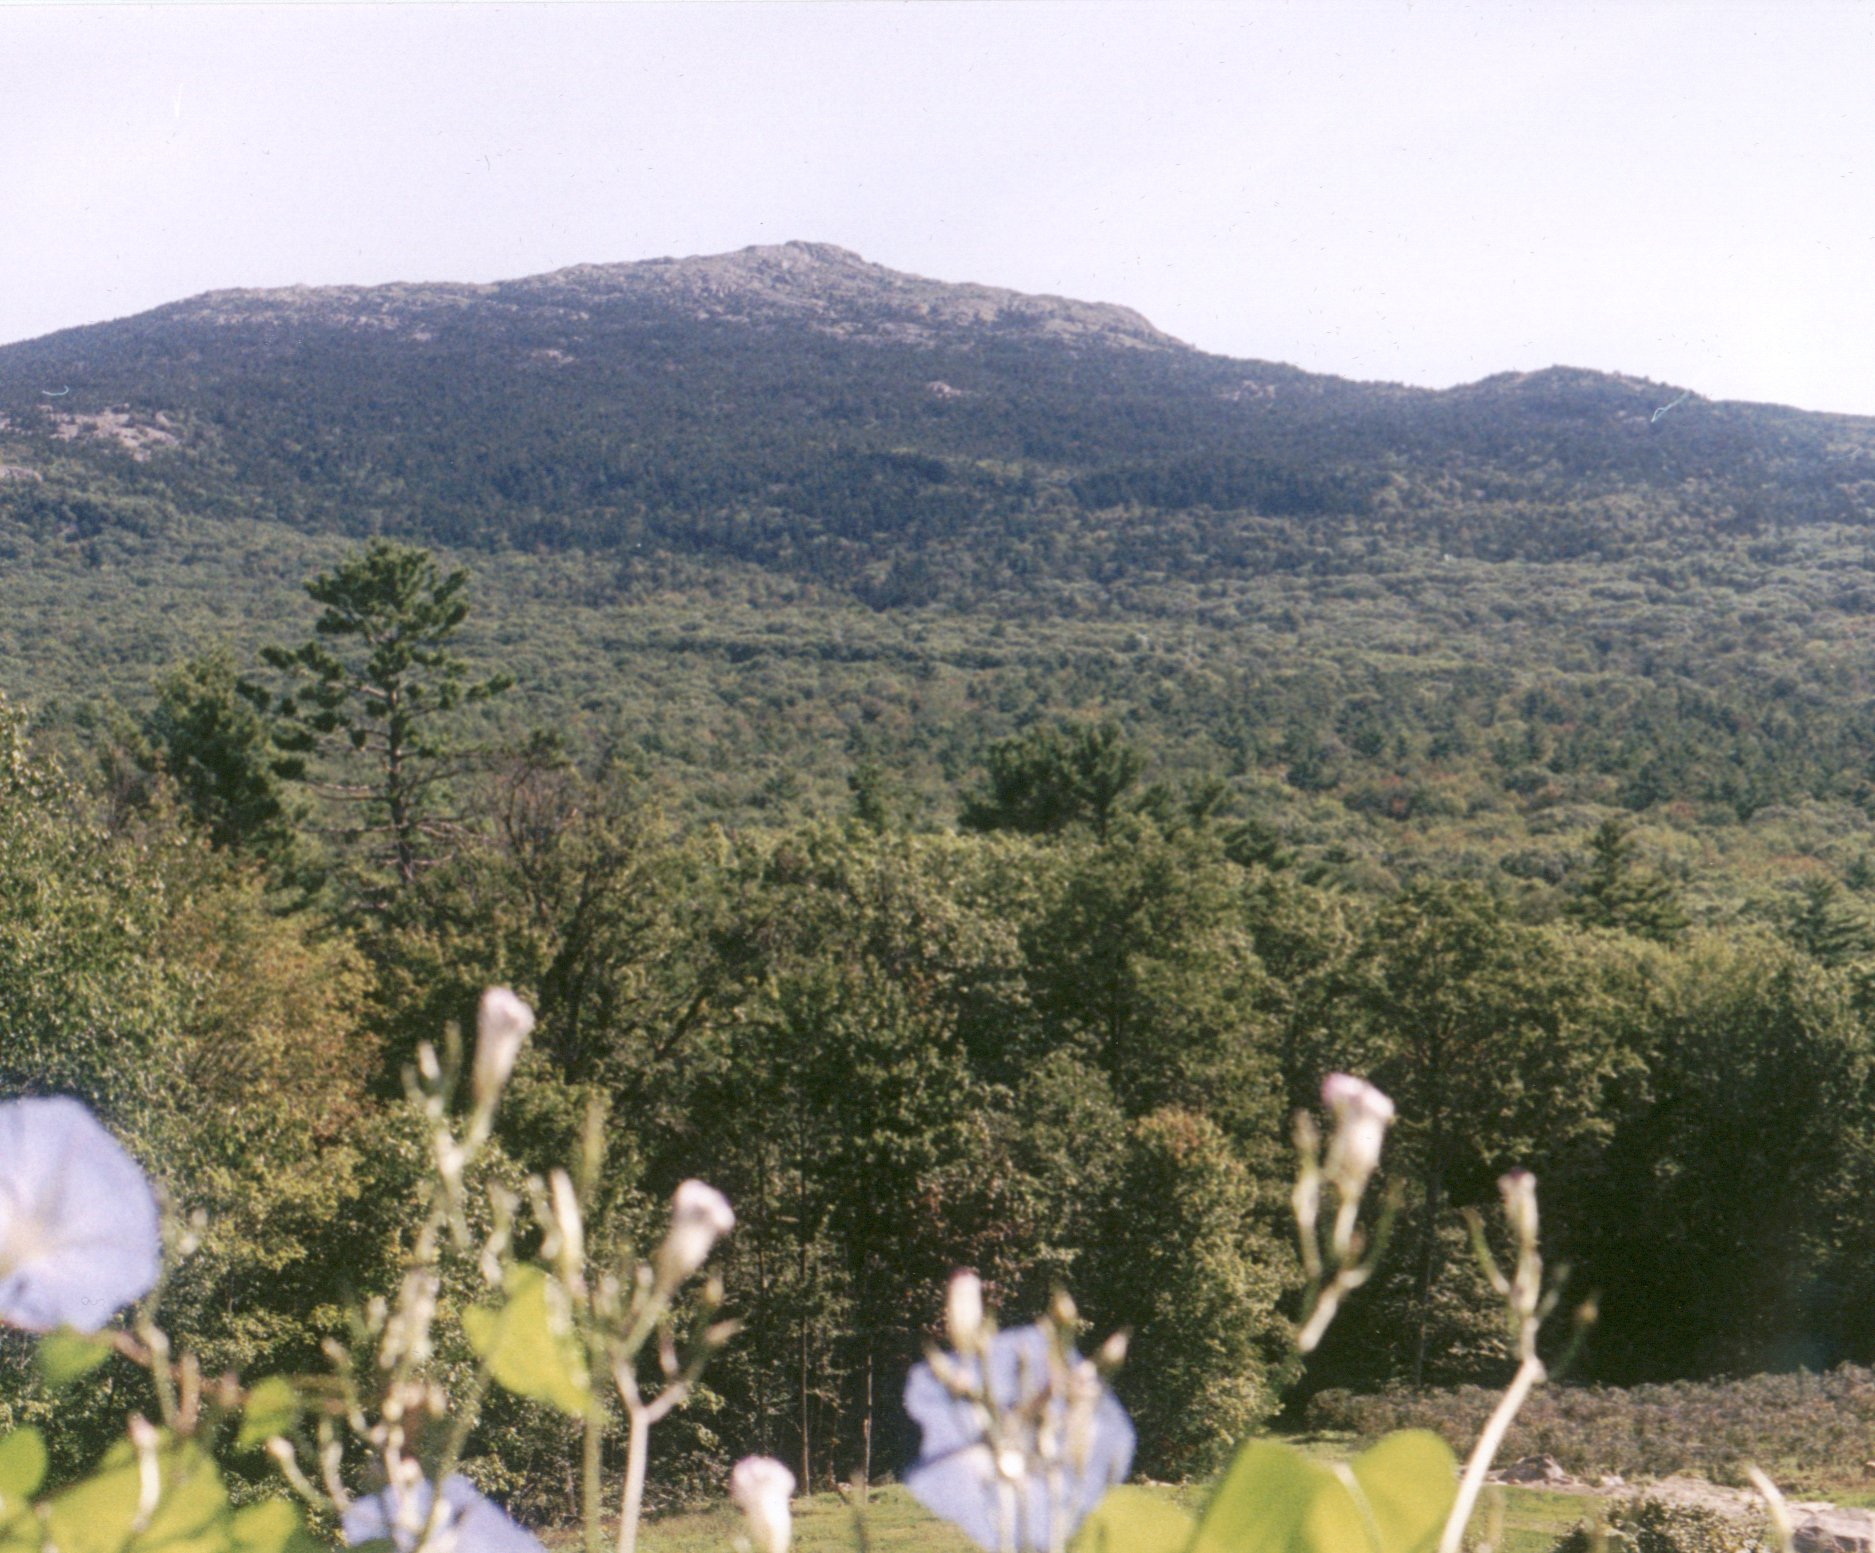 Morning glory & Monadnock background